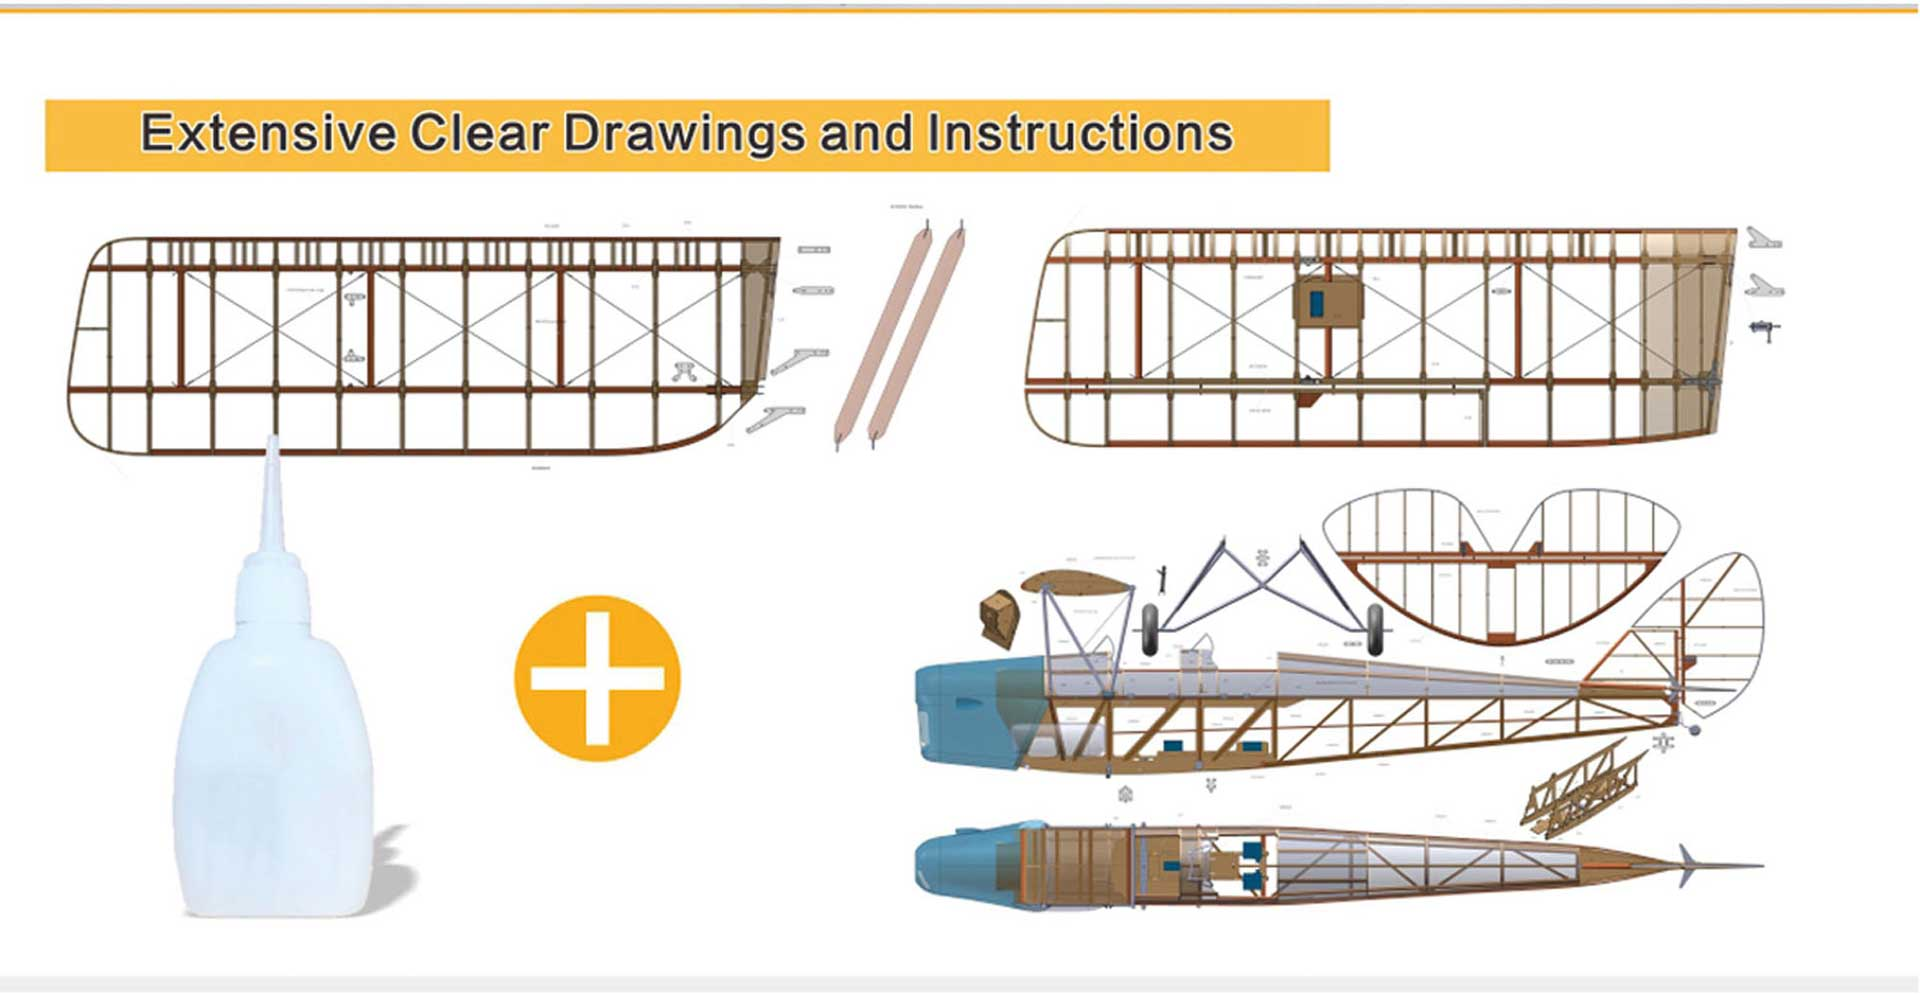 VALUEPLANES TIGER MOTH DEHAVILLAND DH82A WOODEN CONSTRUCTION SET 1:3,8 2,36M WITH METAL FITTINGS AND GFK HOOD